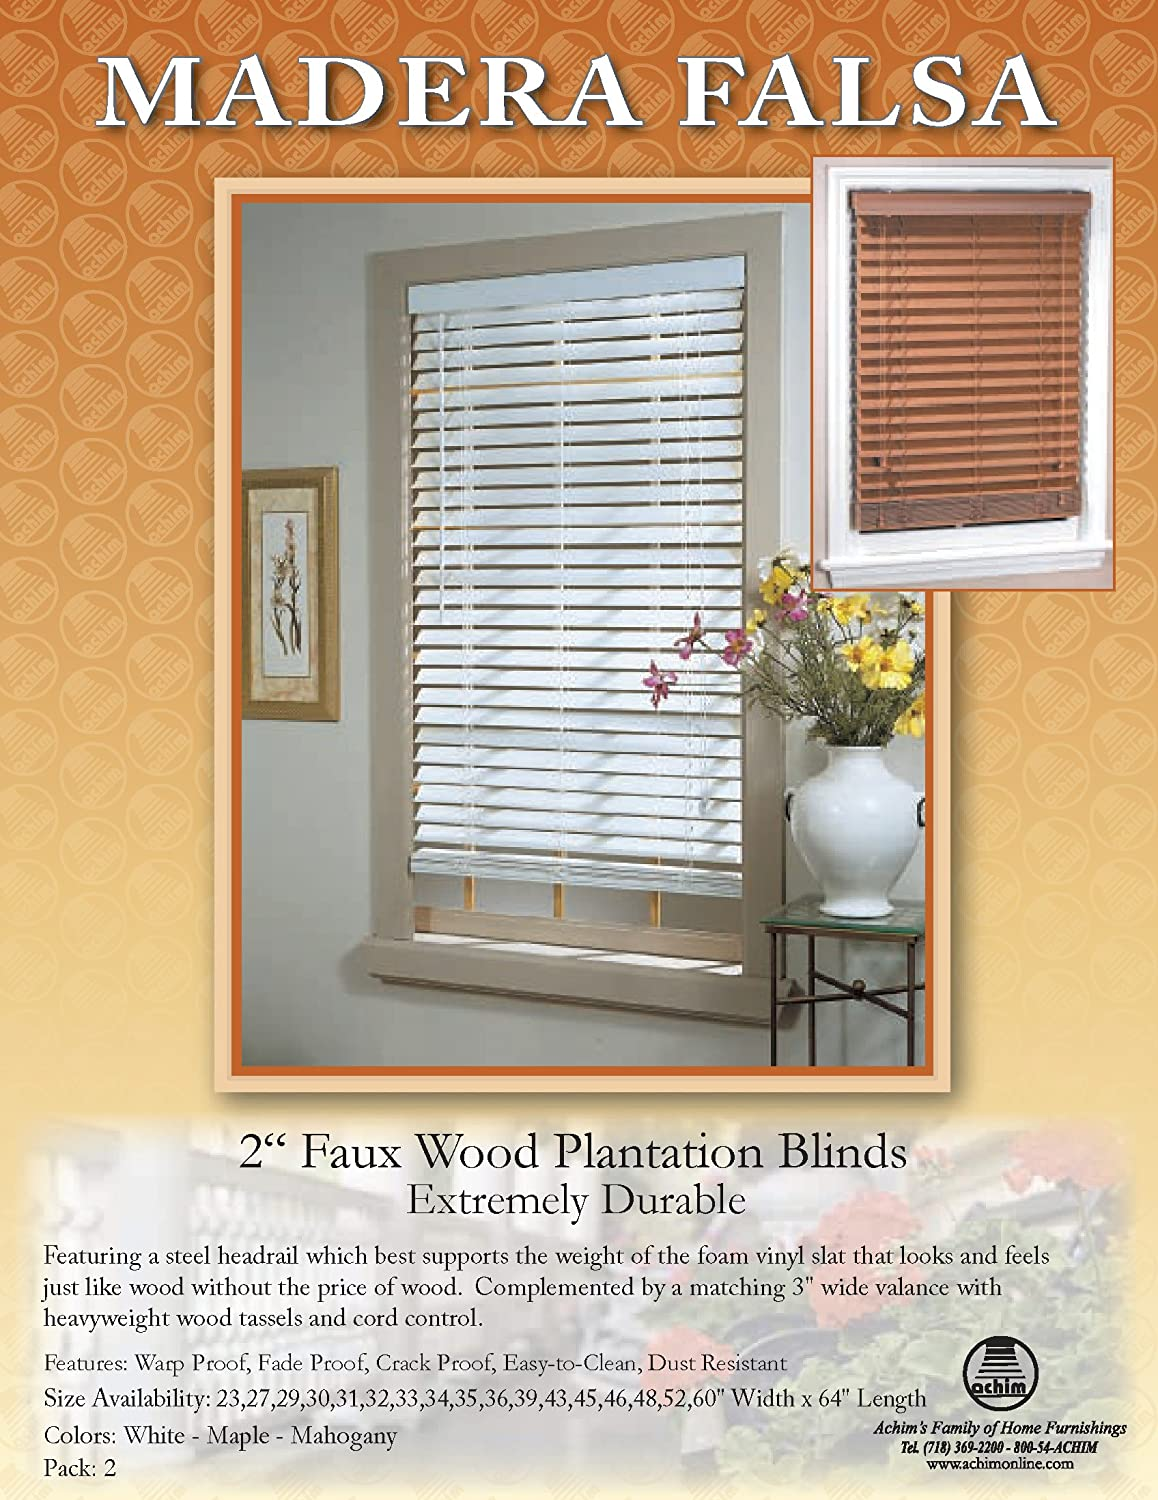 36 inch window blinds - 36 Inch Window Blinds 75